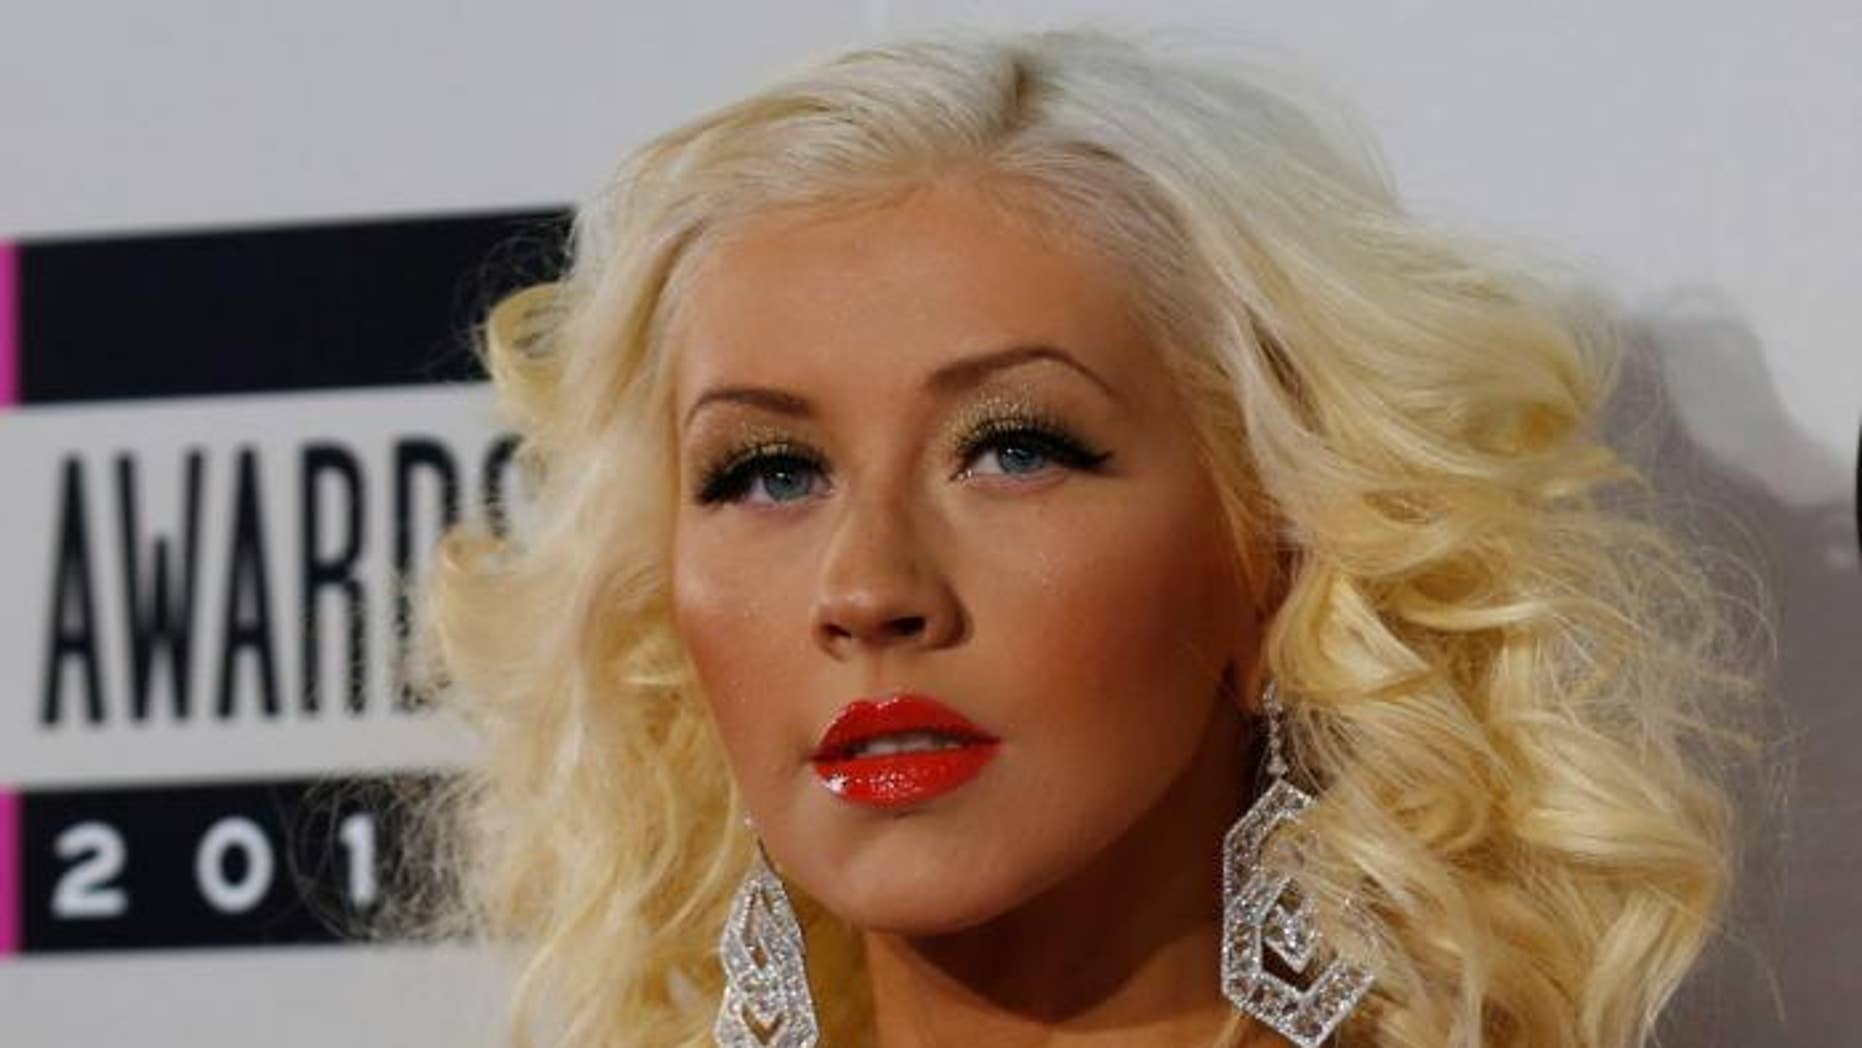 Christina Aguilera is being slammed by fans who accuse her of selling plus-size items for more money.